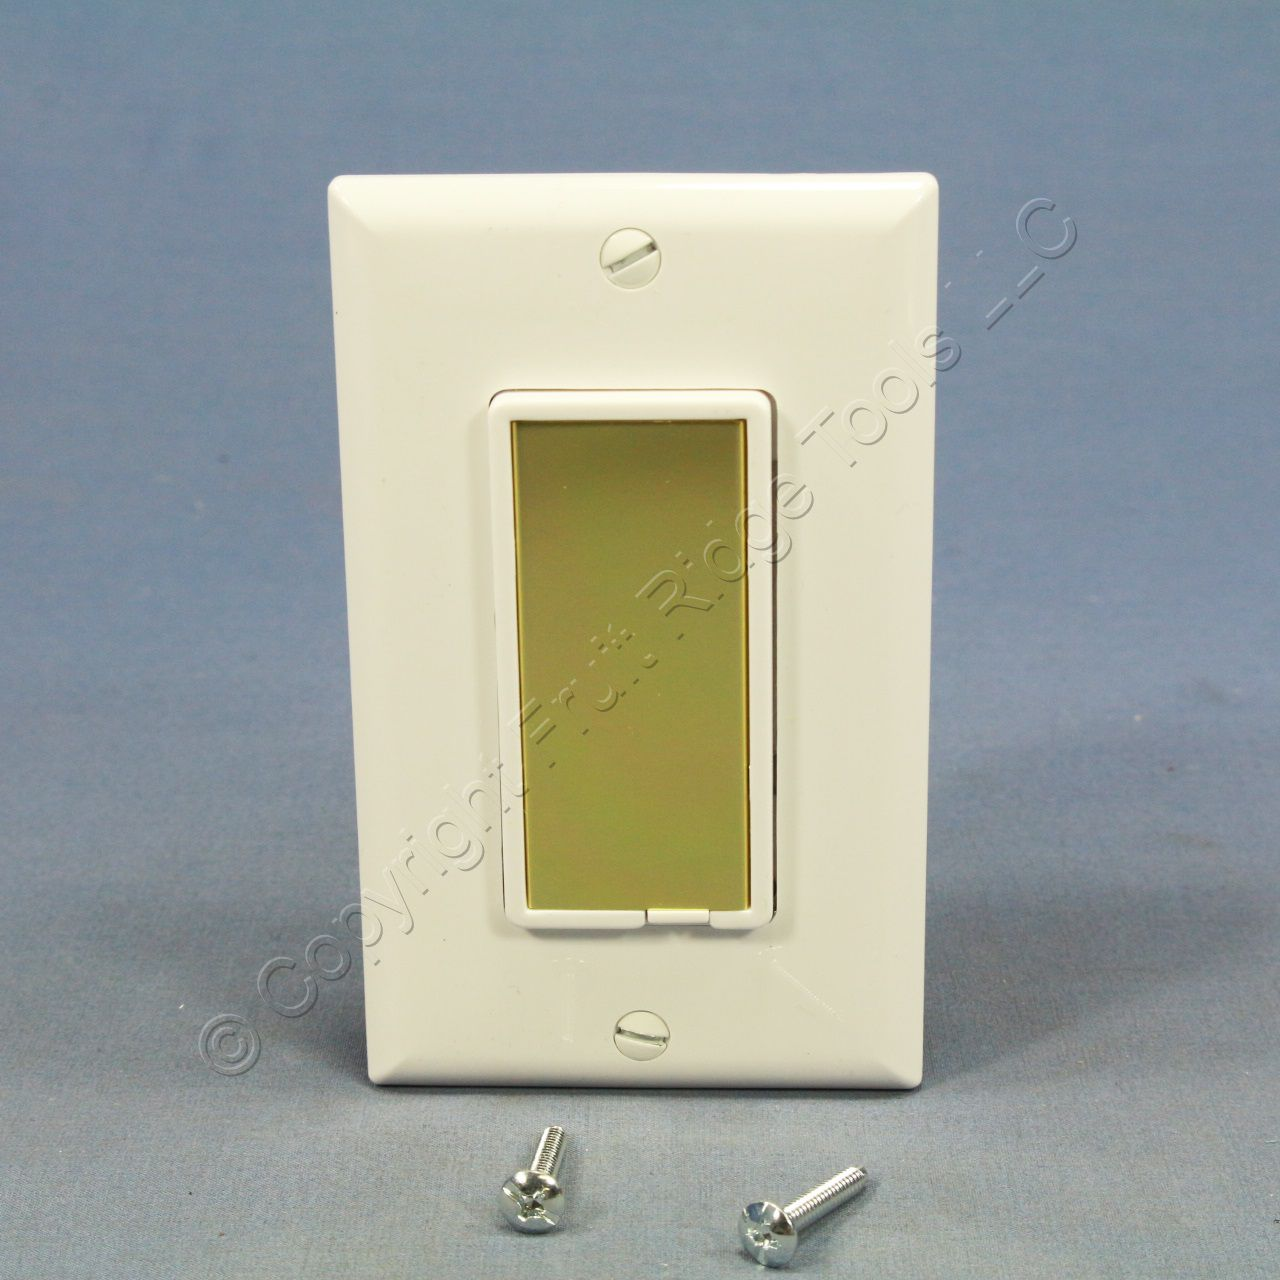 Cooper White Decorator Touch Pad Master Dimmer Switch 600w 3